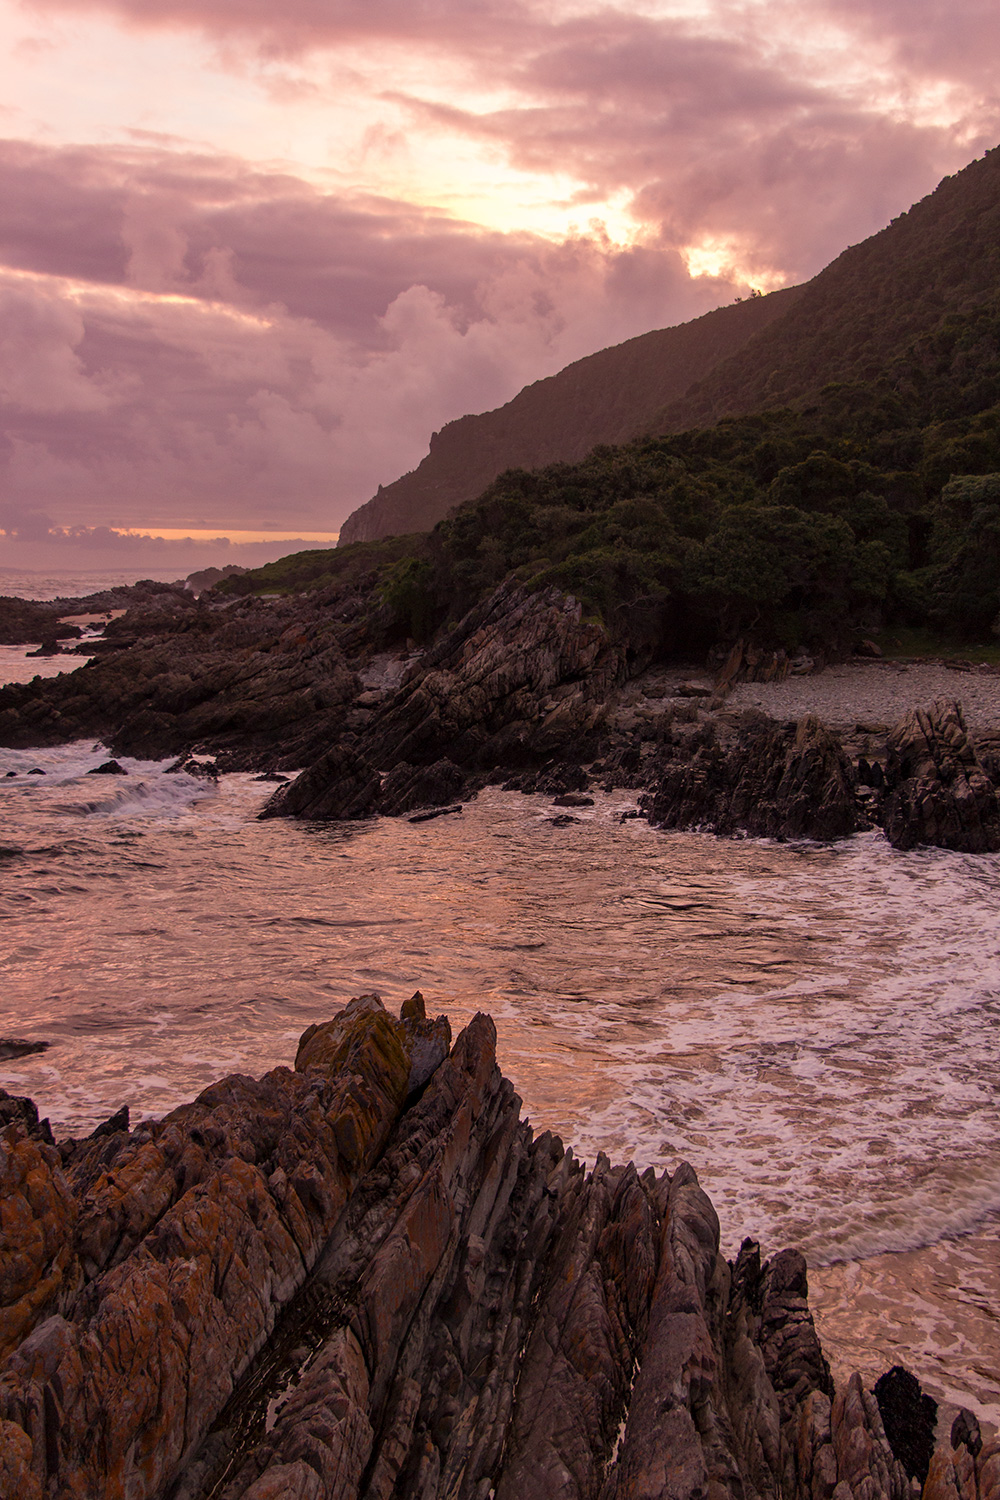 Sunsets on the Otter are breathtaking. We spent every evening on the rocks watching the sun set. The Geelhoutbos River mouth in front of Scott Hut is no exception.  Click image to expand.